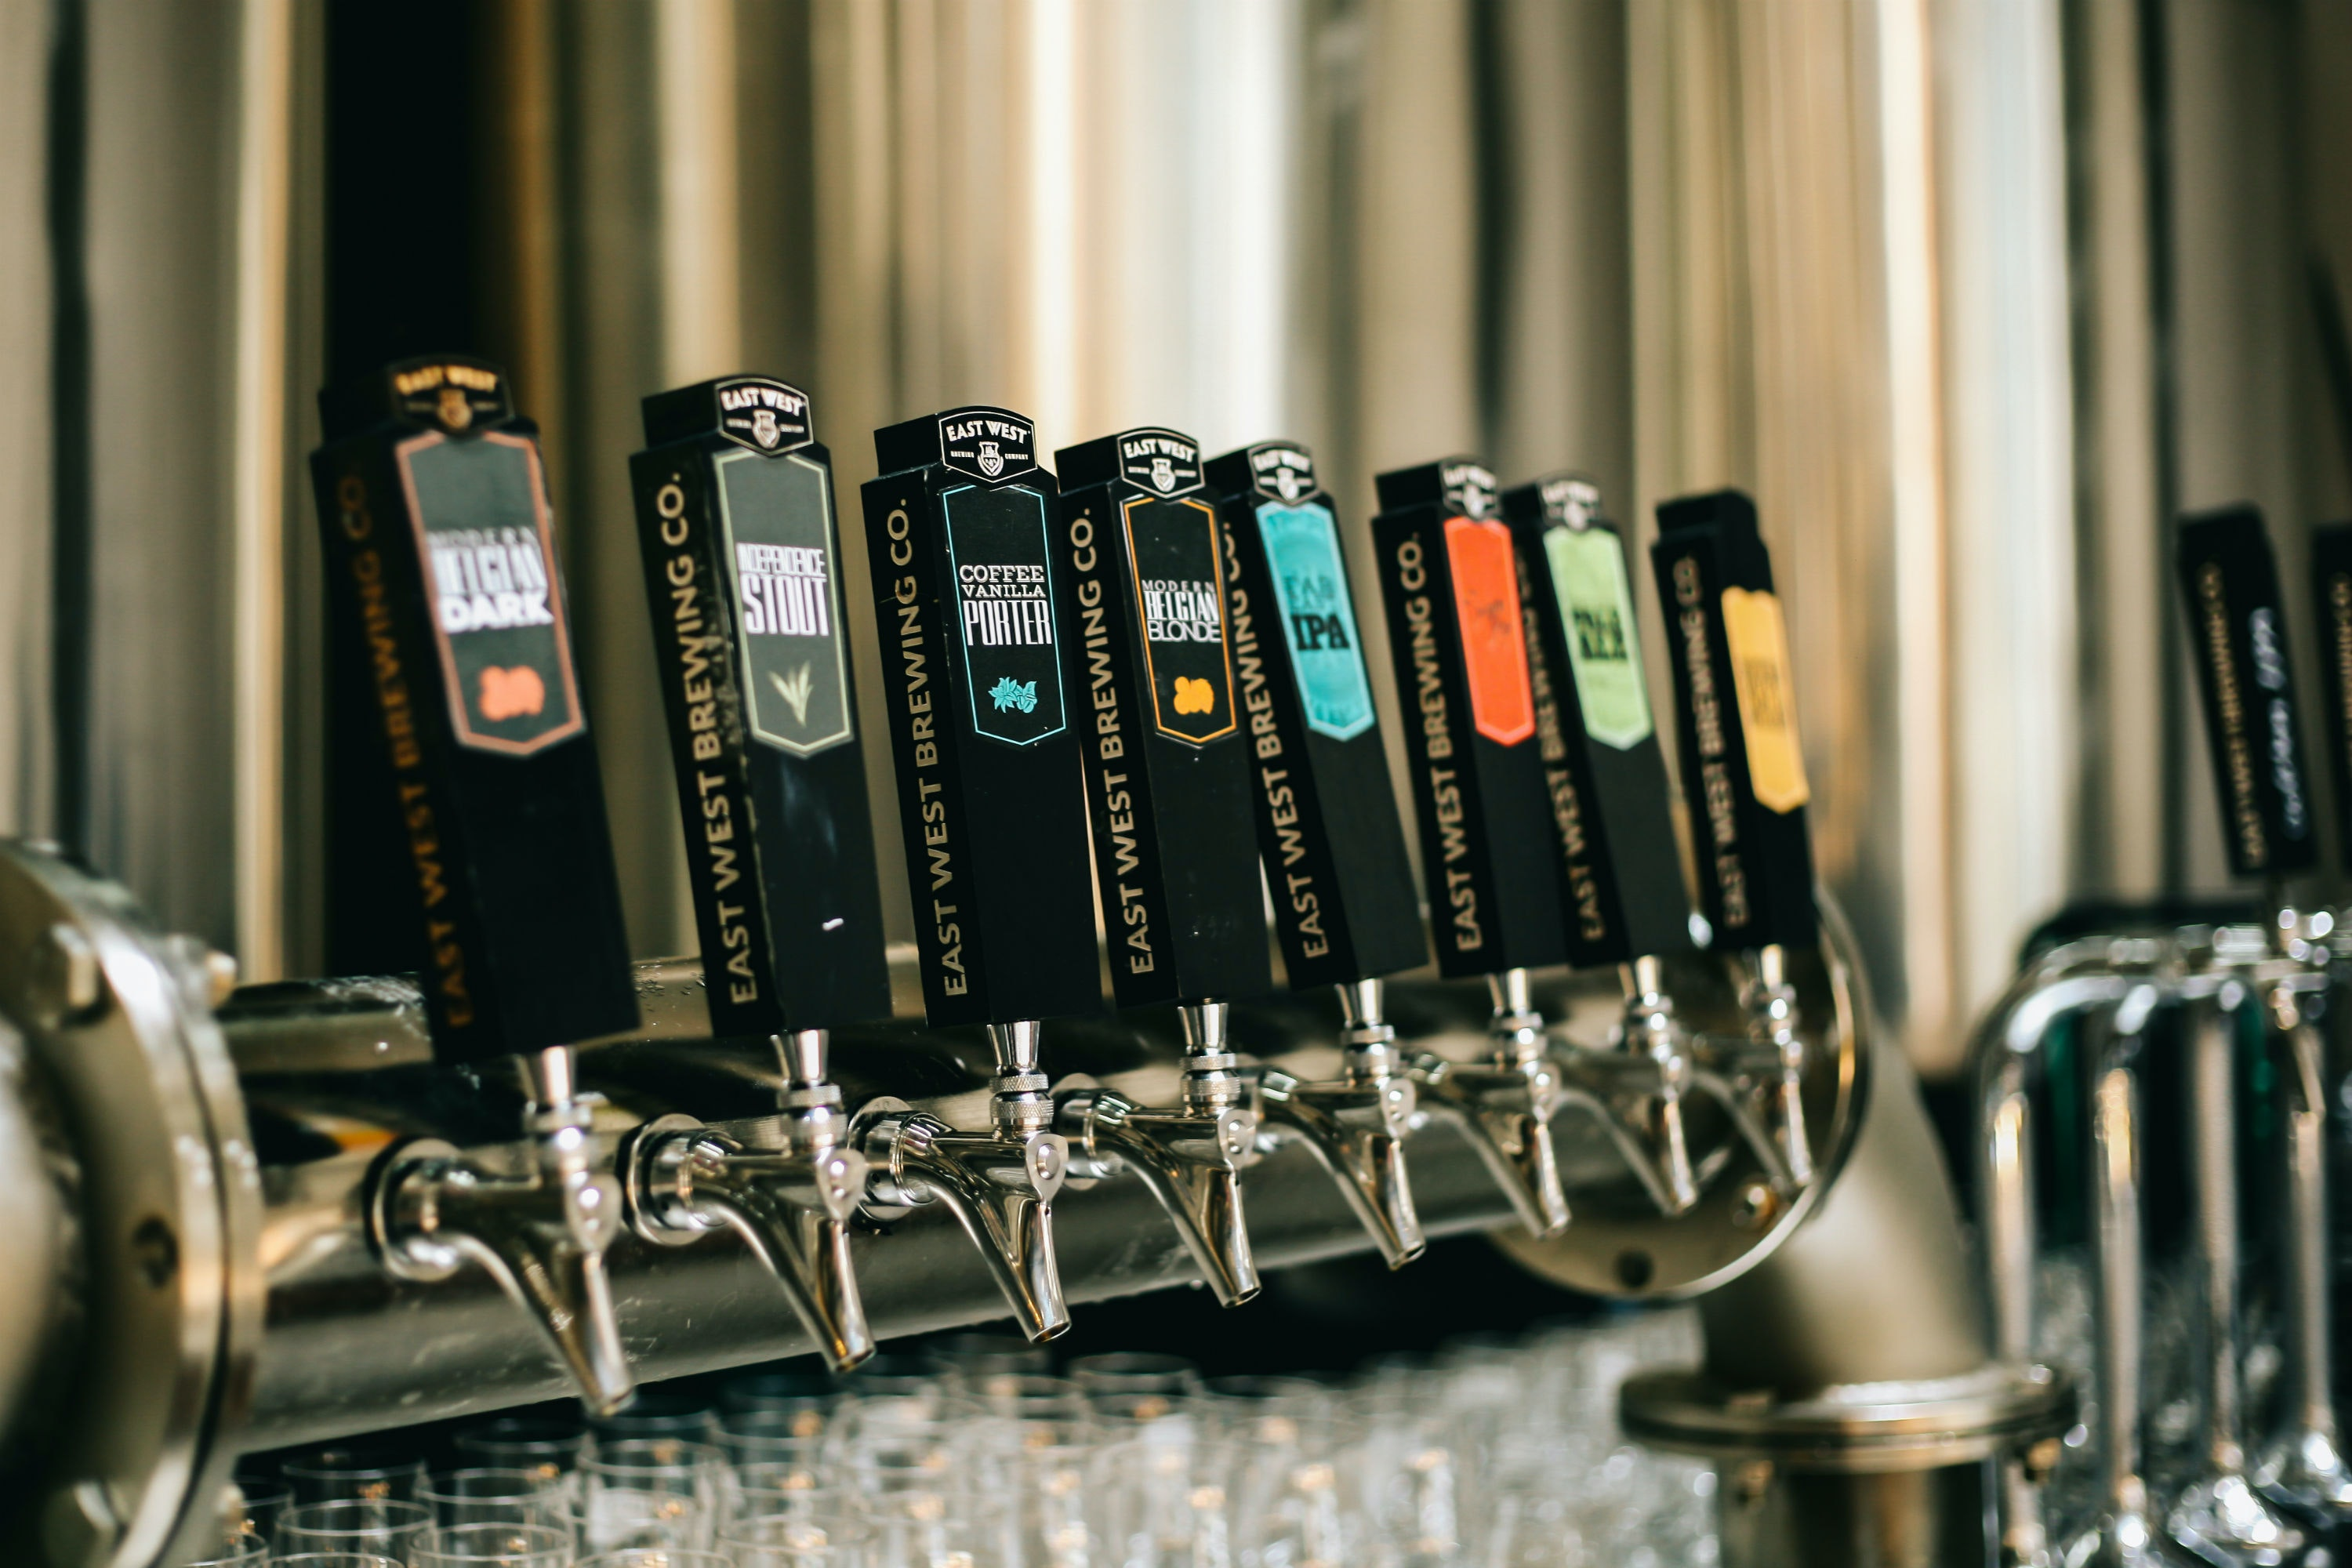 Coffee Vanilla Porter and other exotic flavors are on offer at East West Brewing.